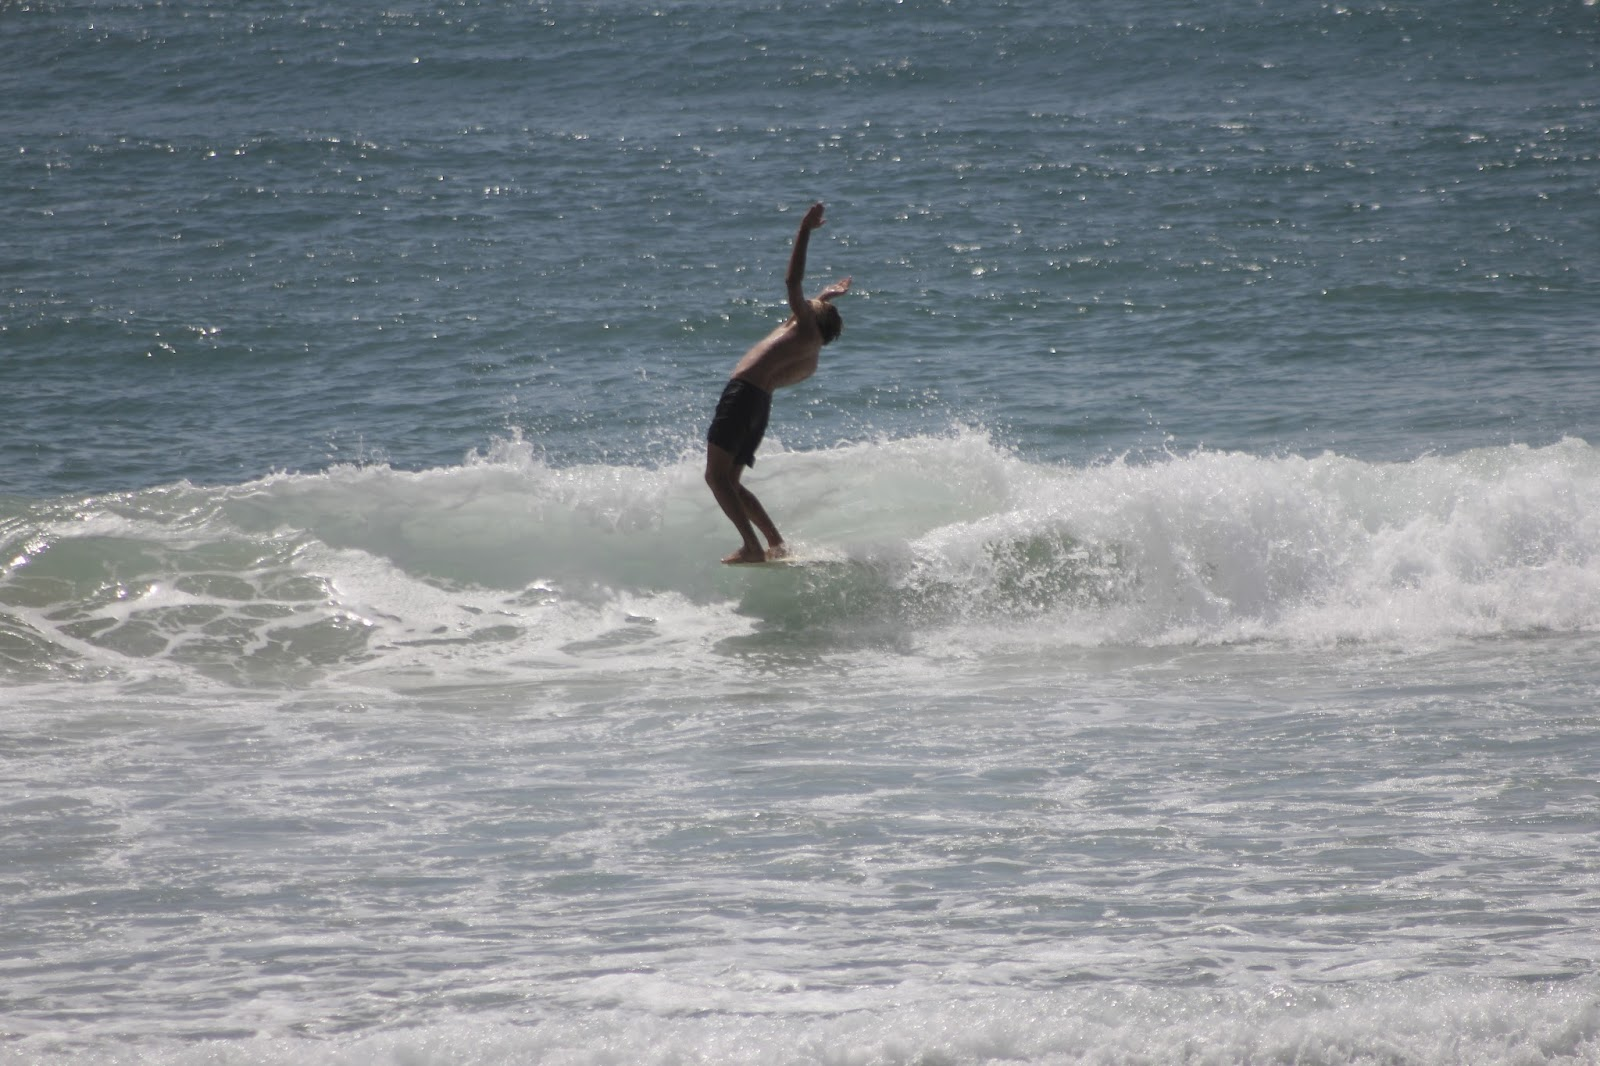 11-03-2016-australia-siebert-surfboards-07